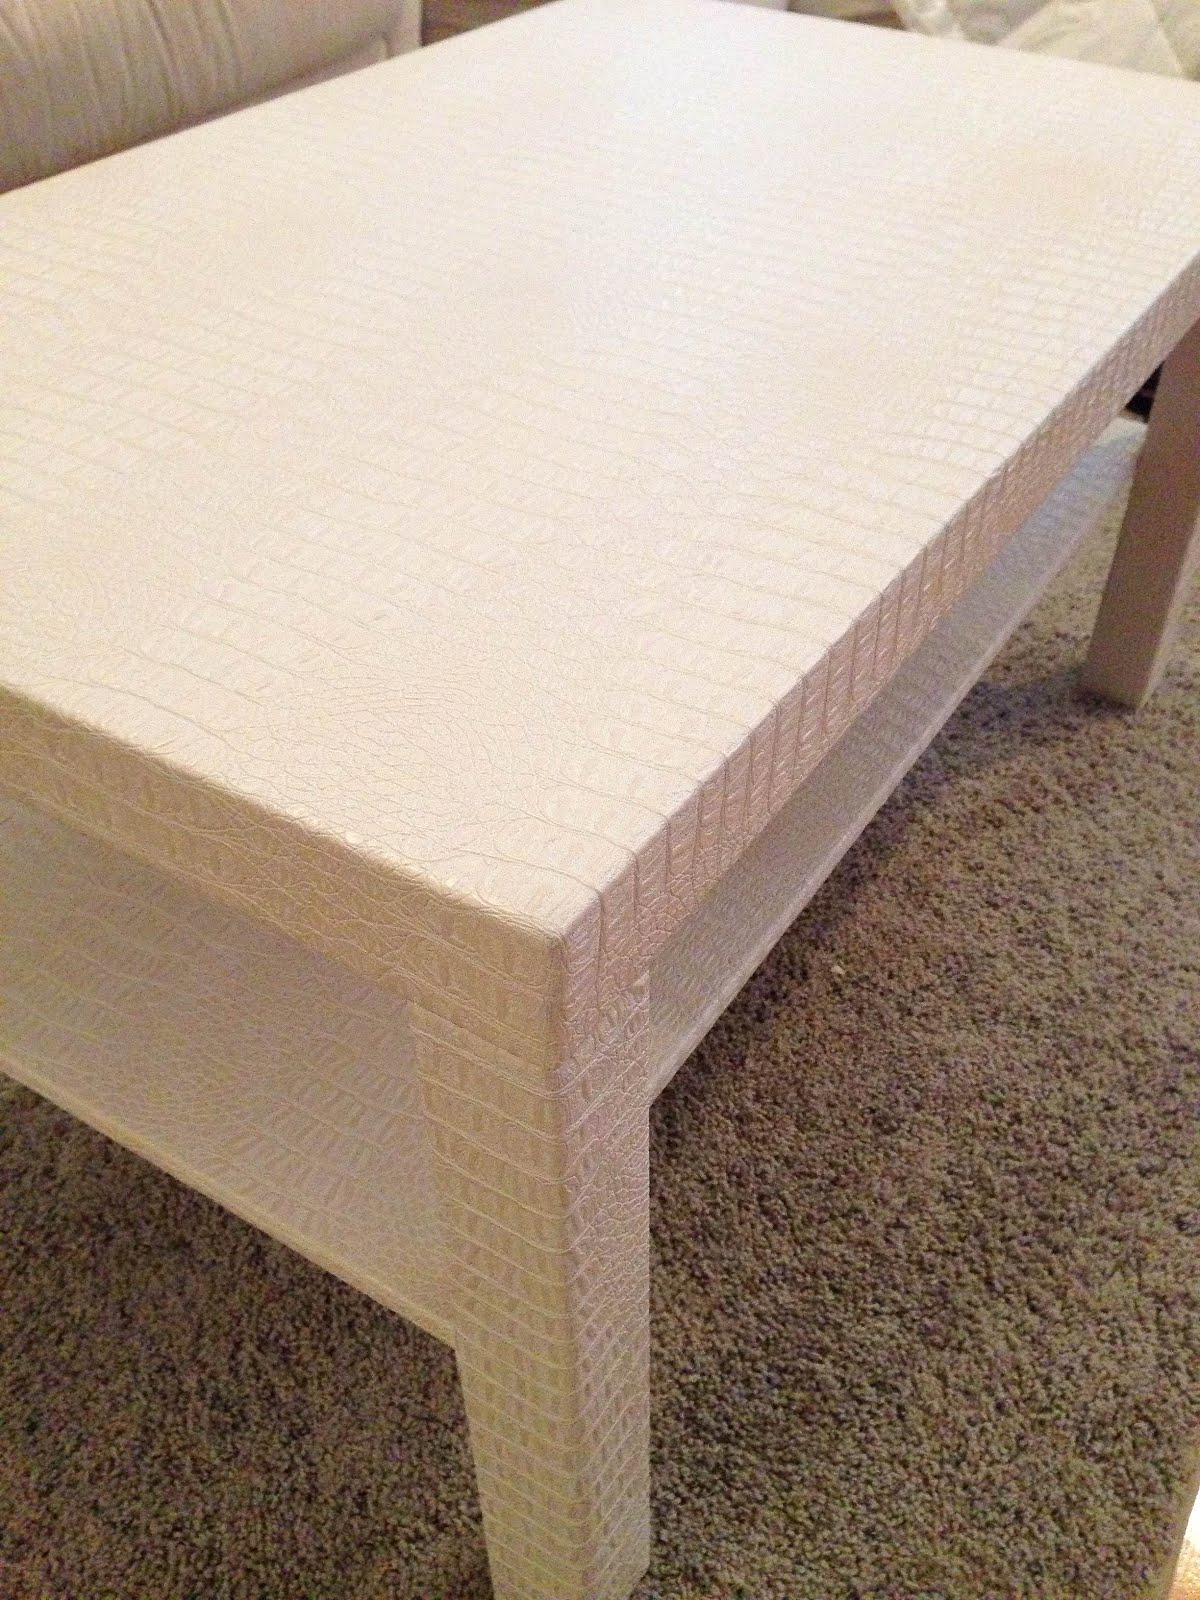 Marble Lift Top Coffee Table 0 Pics Hemnes Lift marble Lift Top